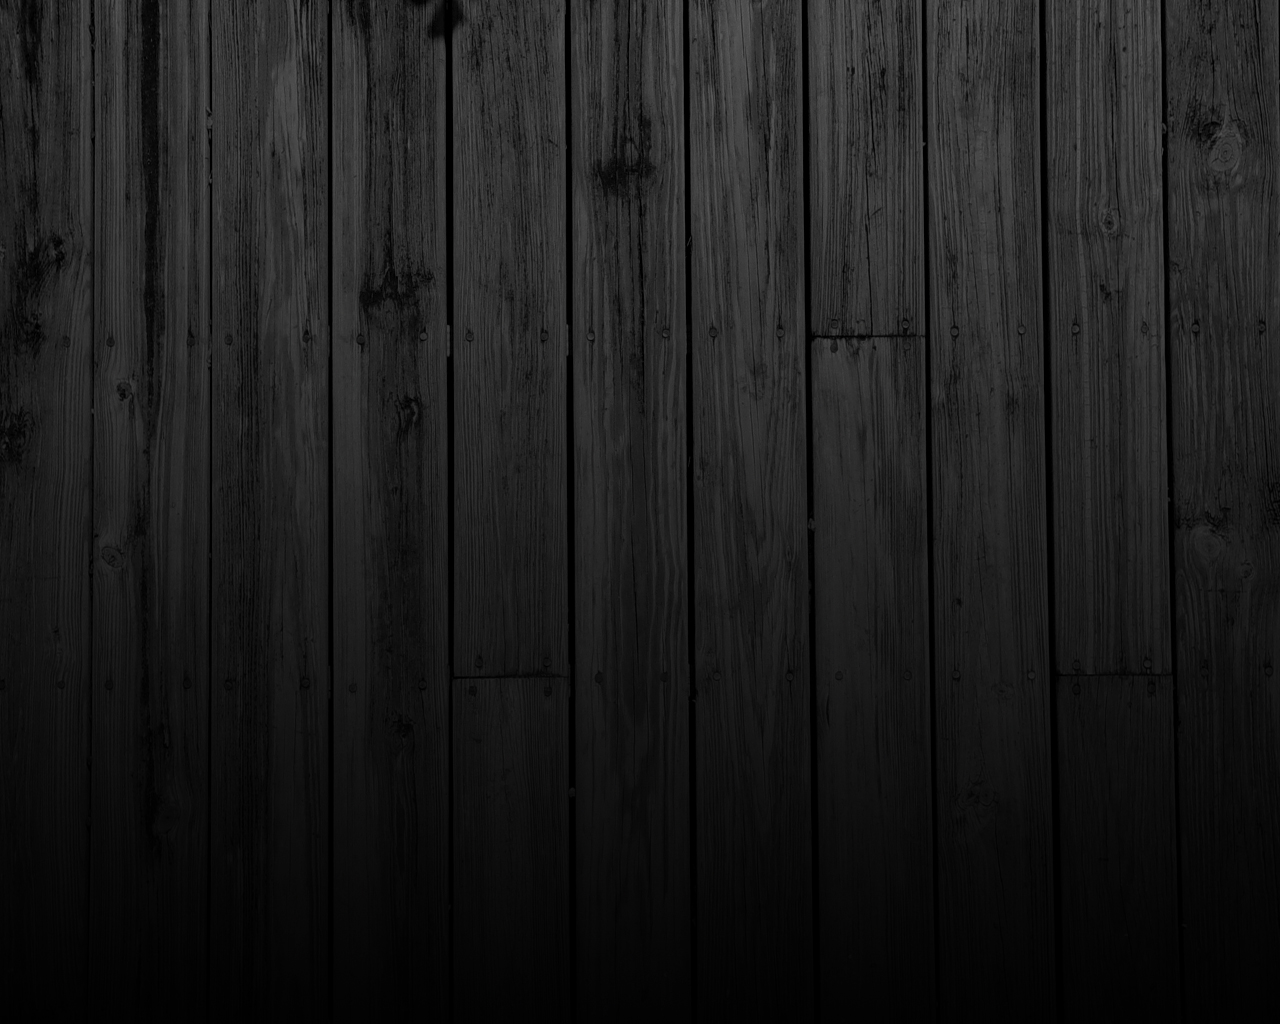 dark wooden planks desktop wallpaper